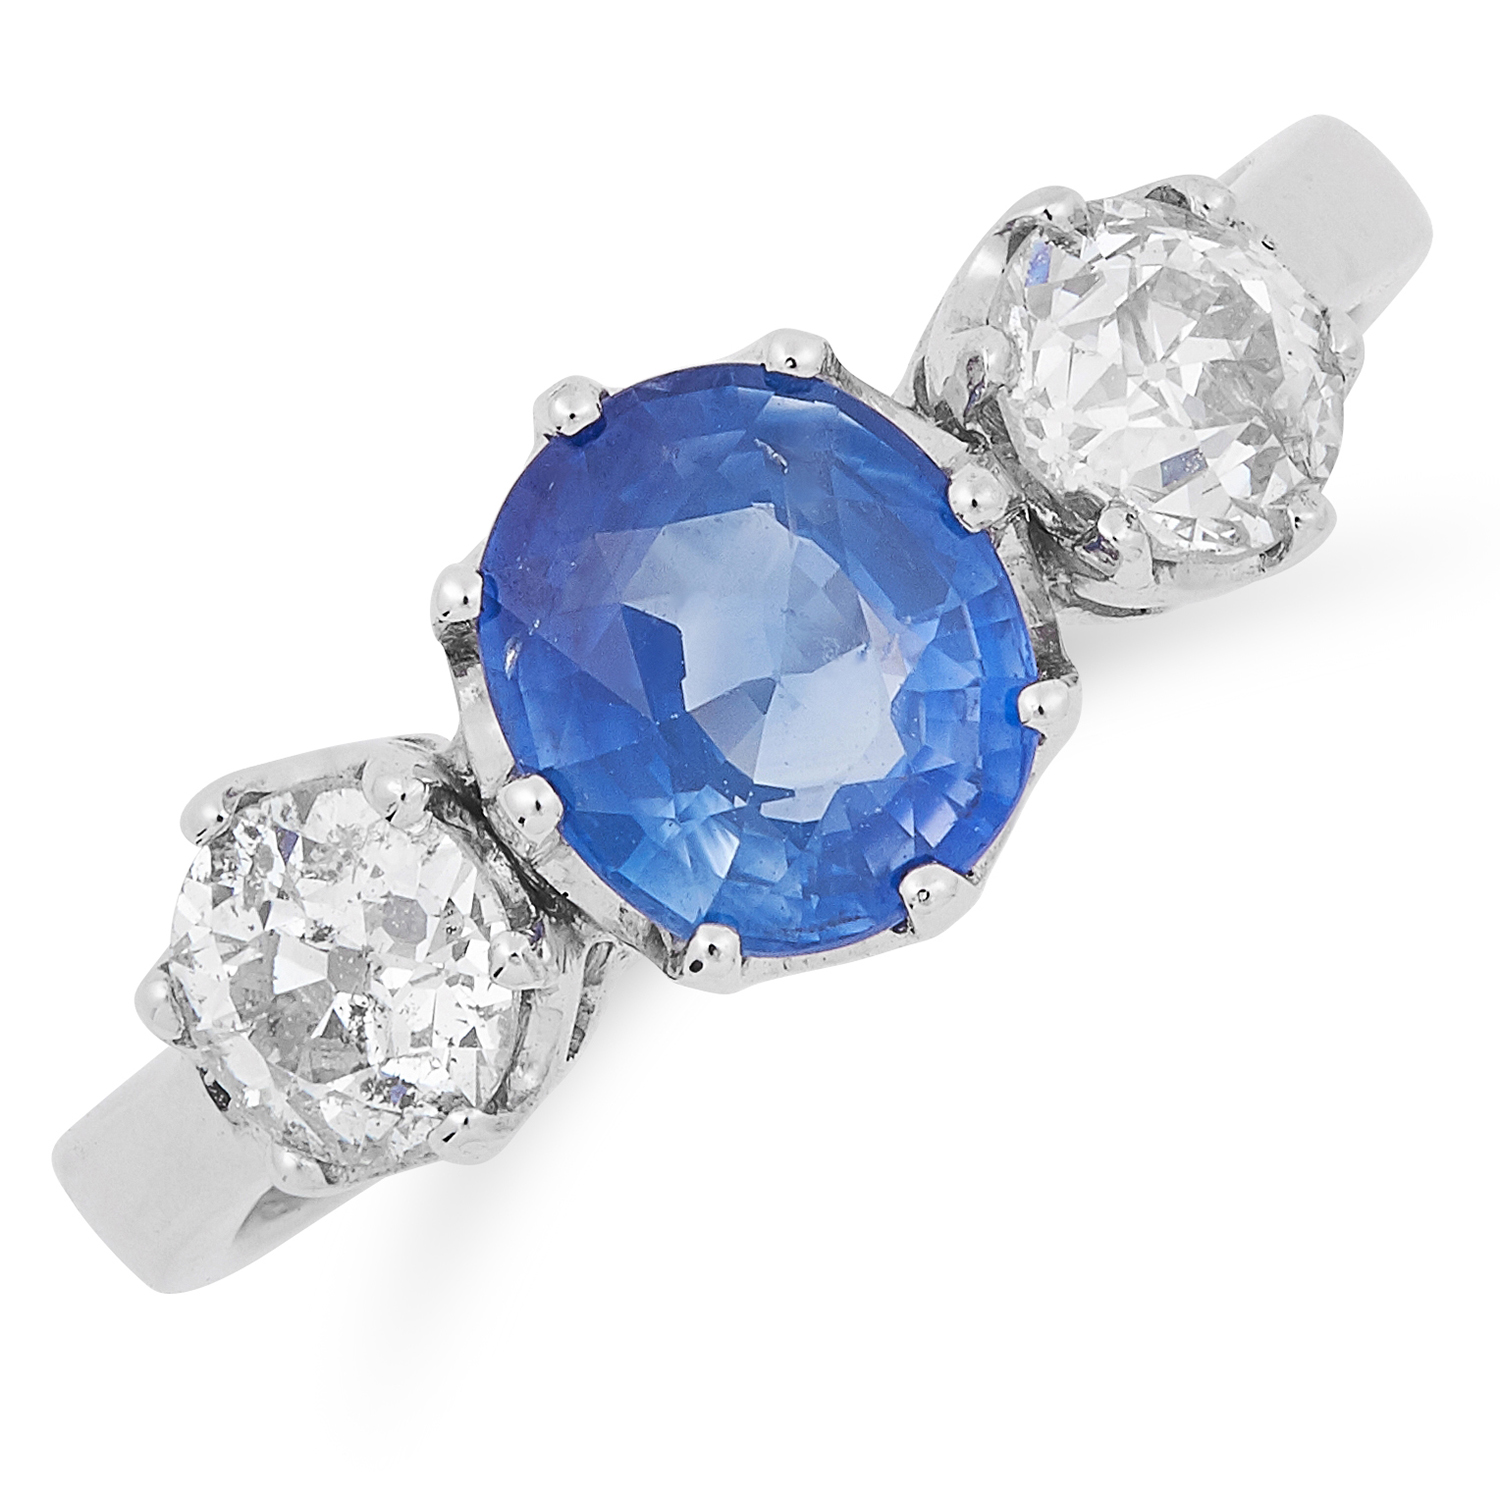 SAPPHIRE AND DIAMOND THREE STONE RING set with an oval cut sapphire of approximately 1.14 carats